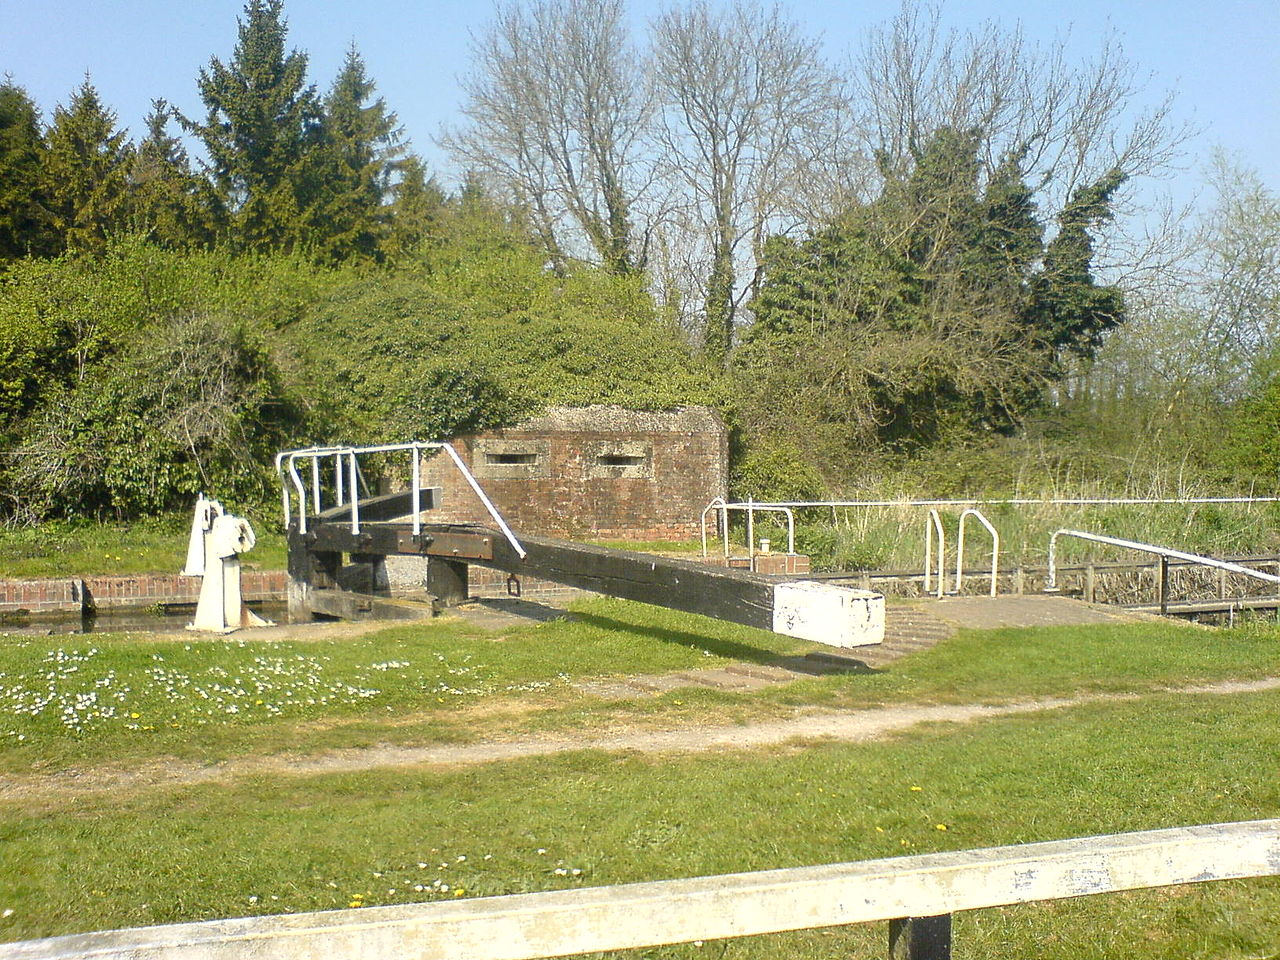 Pill box at Garston Lock